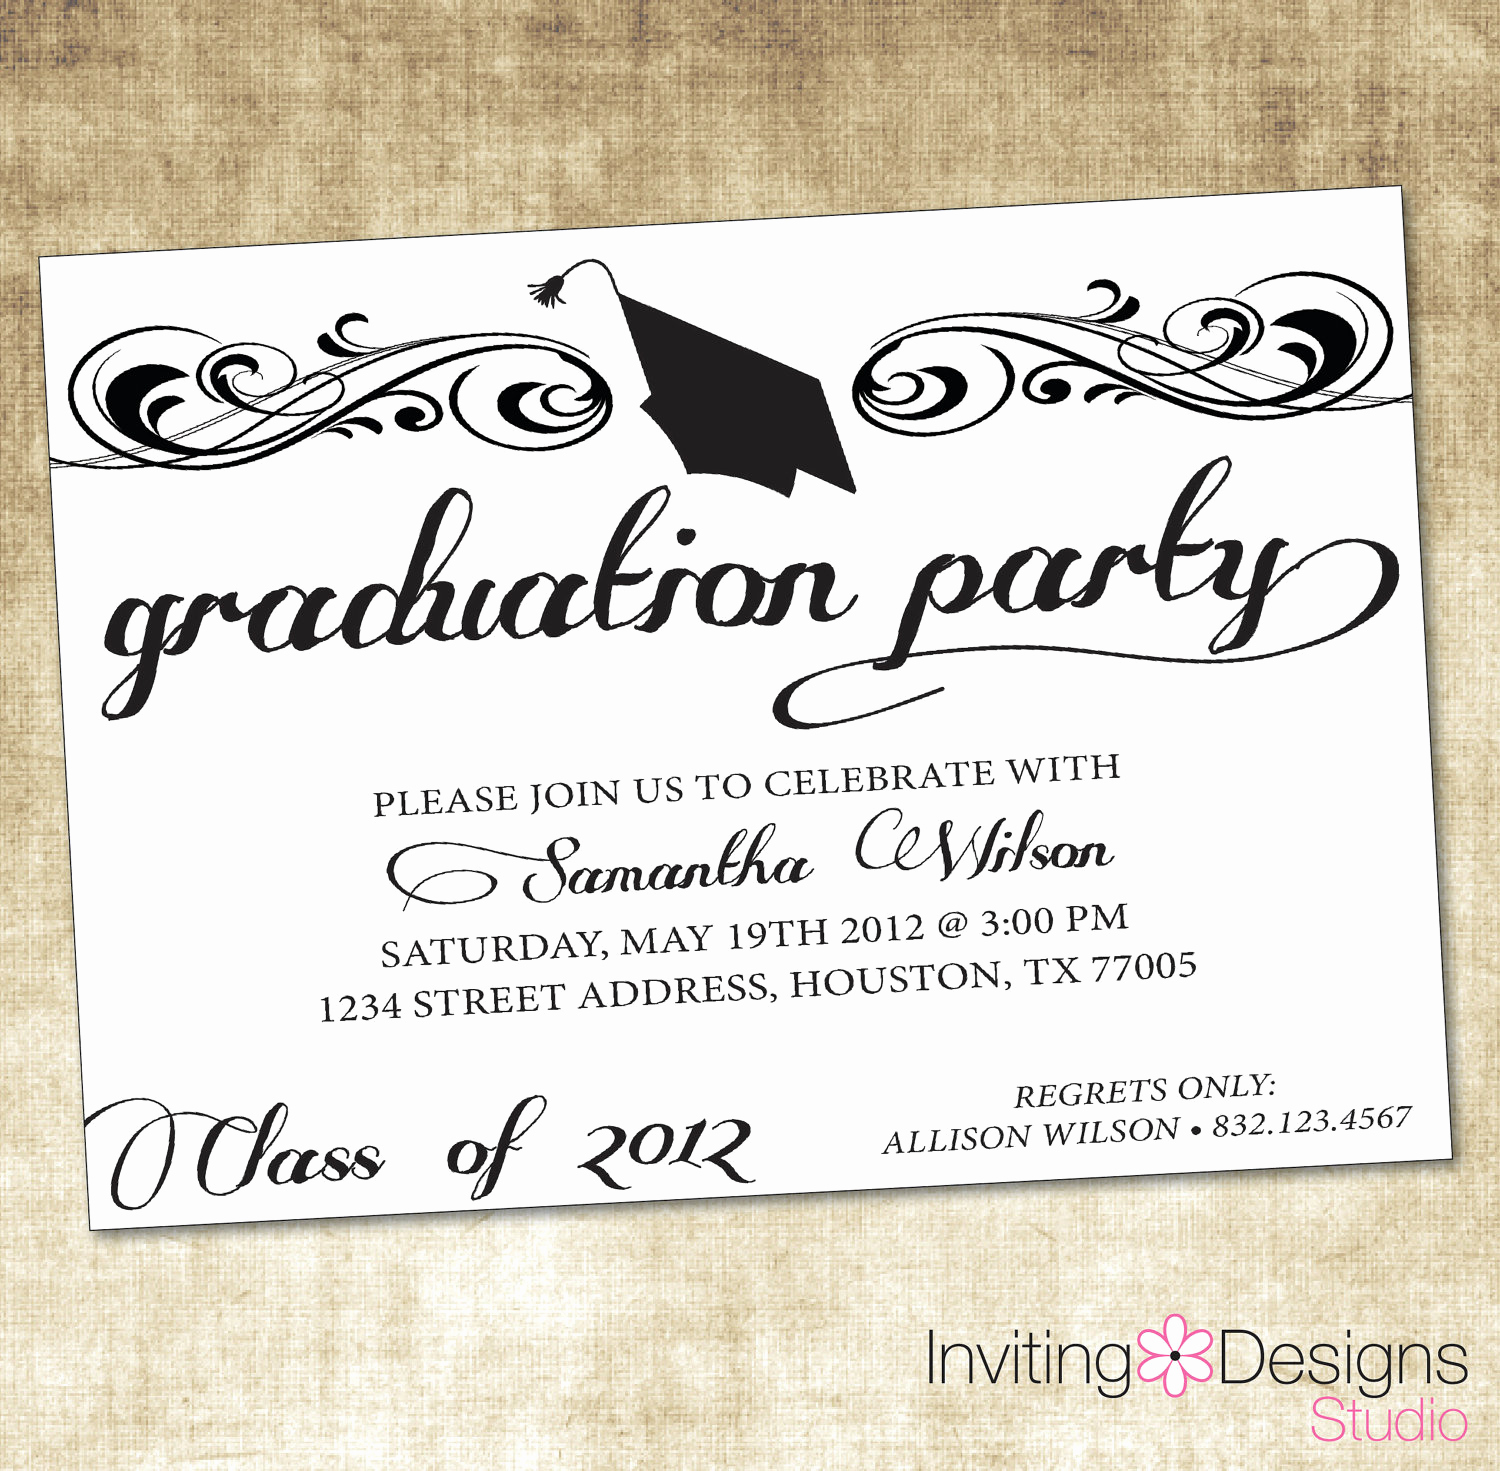 Graduation Party Invitation Ideas Fresh Quotes for Graduation Party Invitations Quotesgram